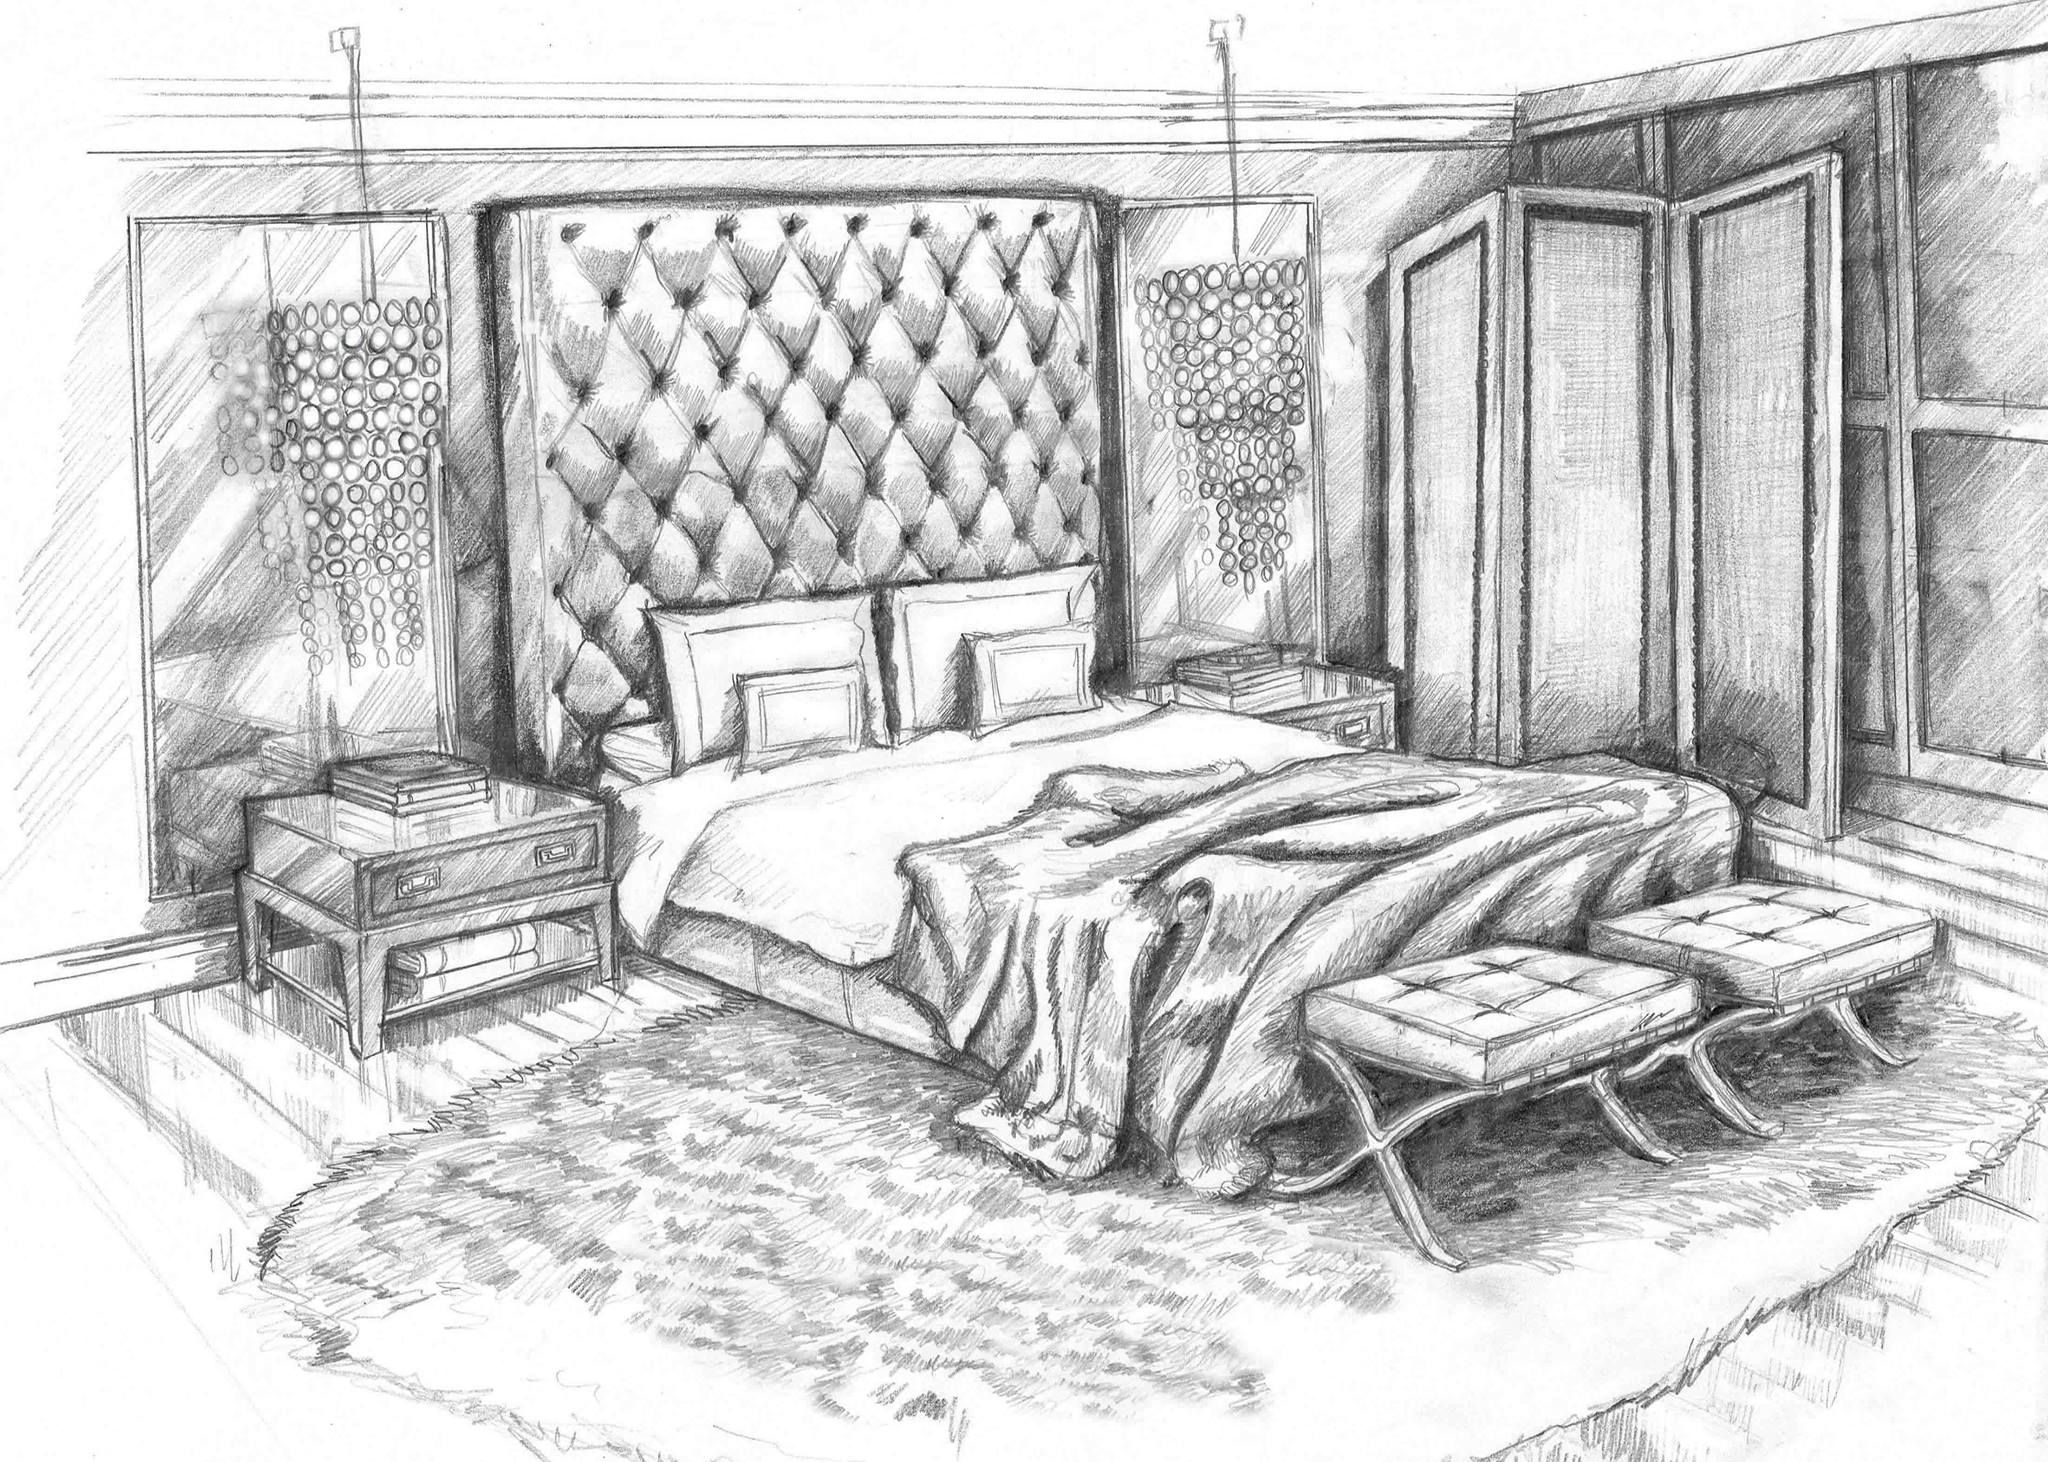 Pencil Sketch Art Master Bedroom Concept Design Visual By Lorraine Warwick Ellis